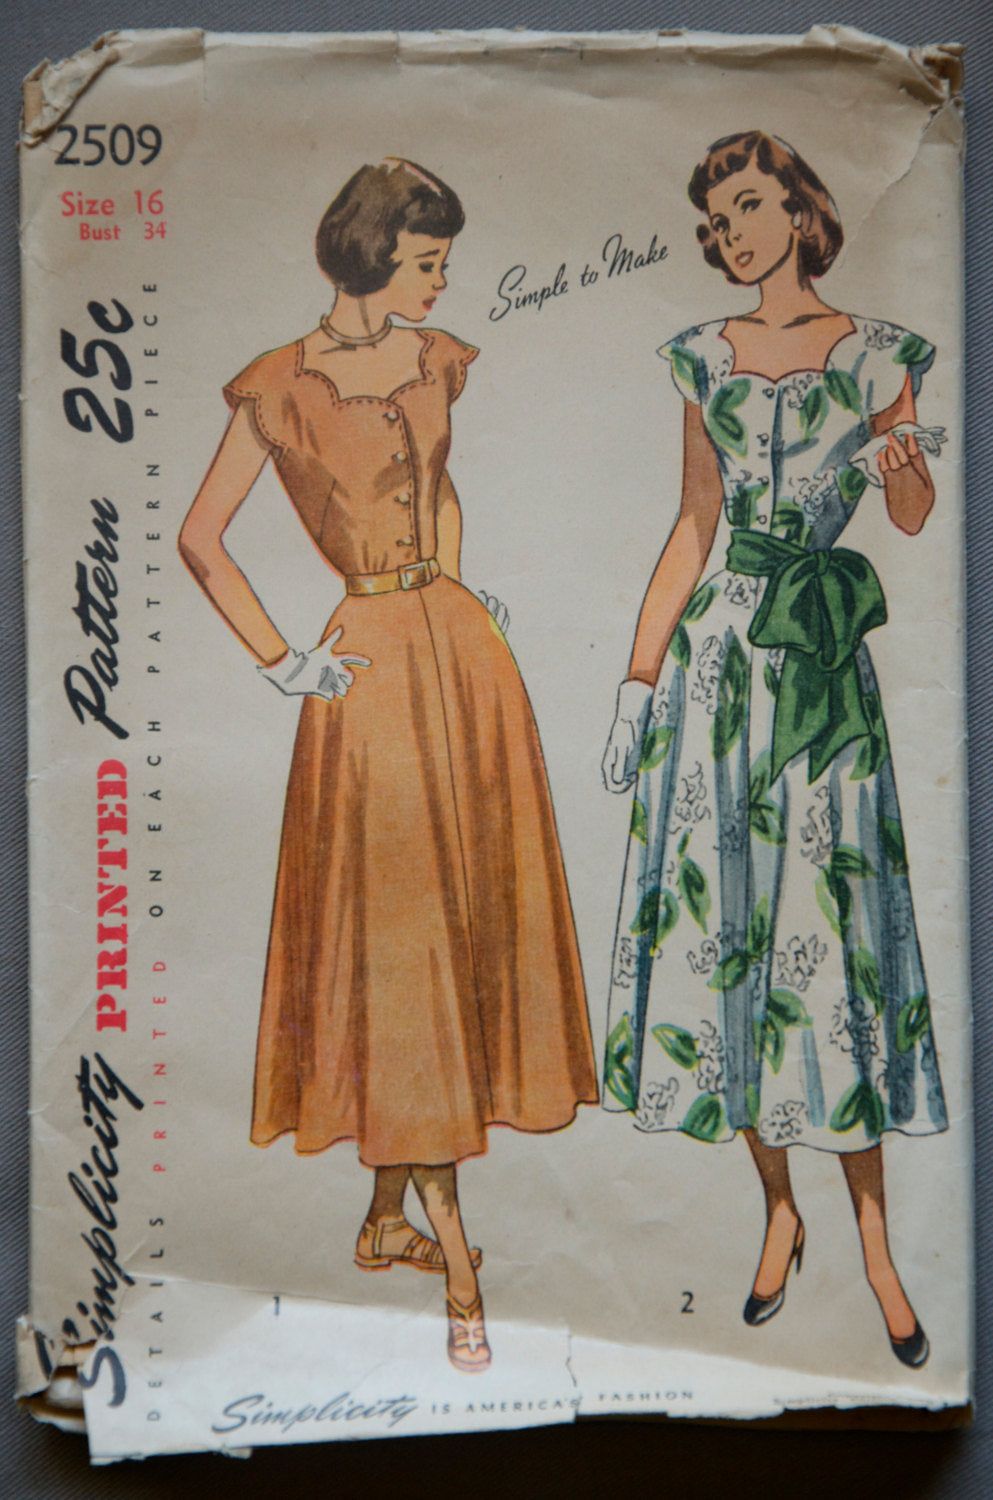 1940's Simplicity A-line Dress Pattern - Bust 34